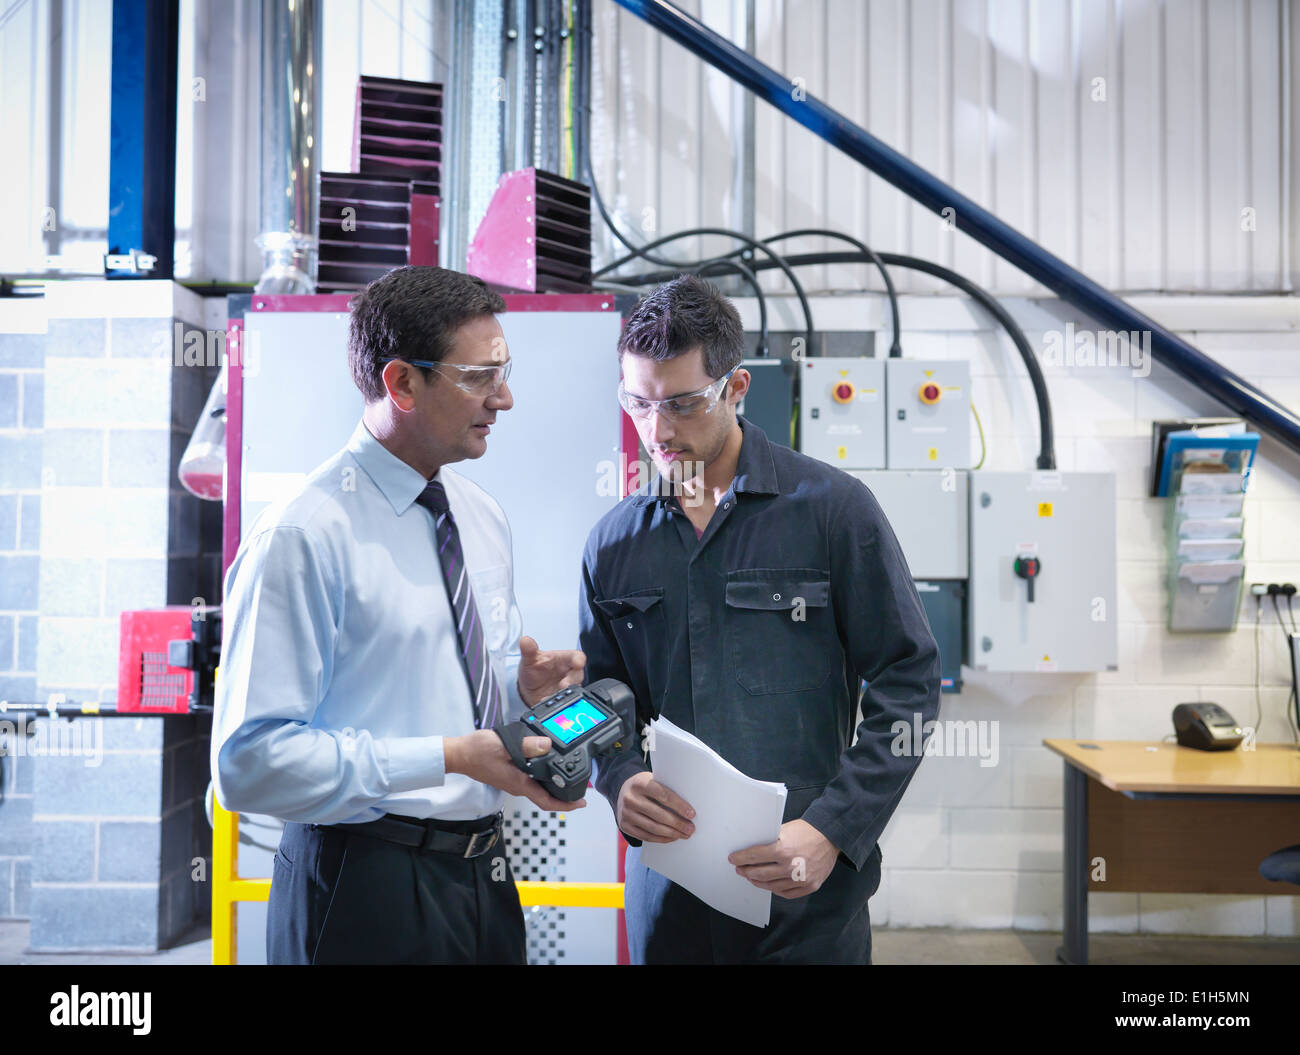 Office manager and worker discuss energy use with infra red camera next to boiler in factory - Stock Image